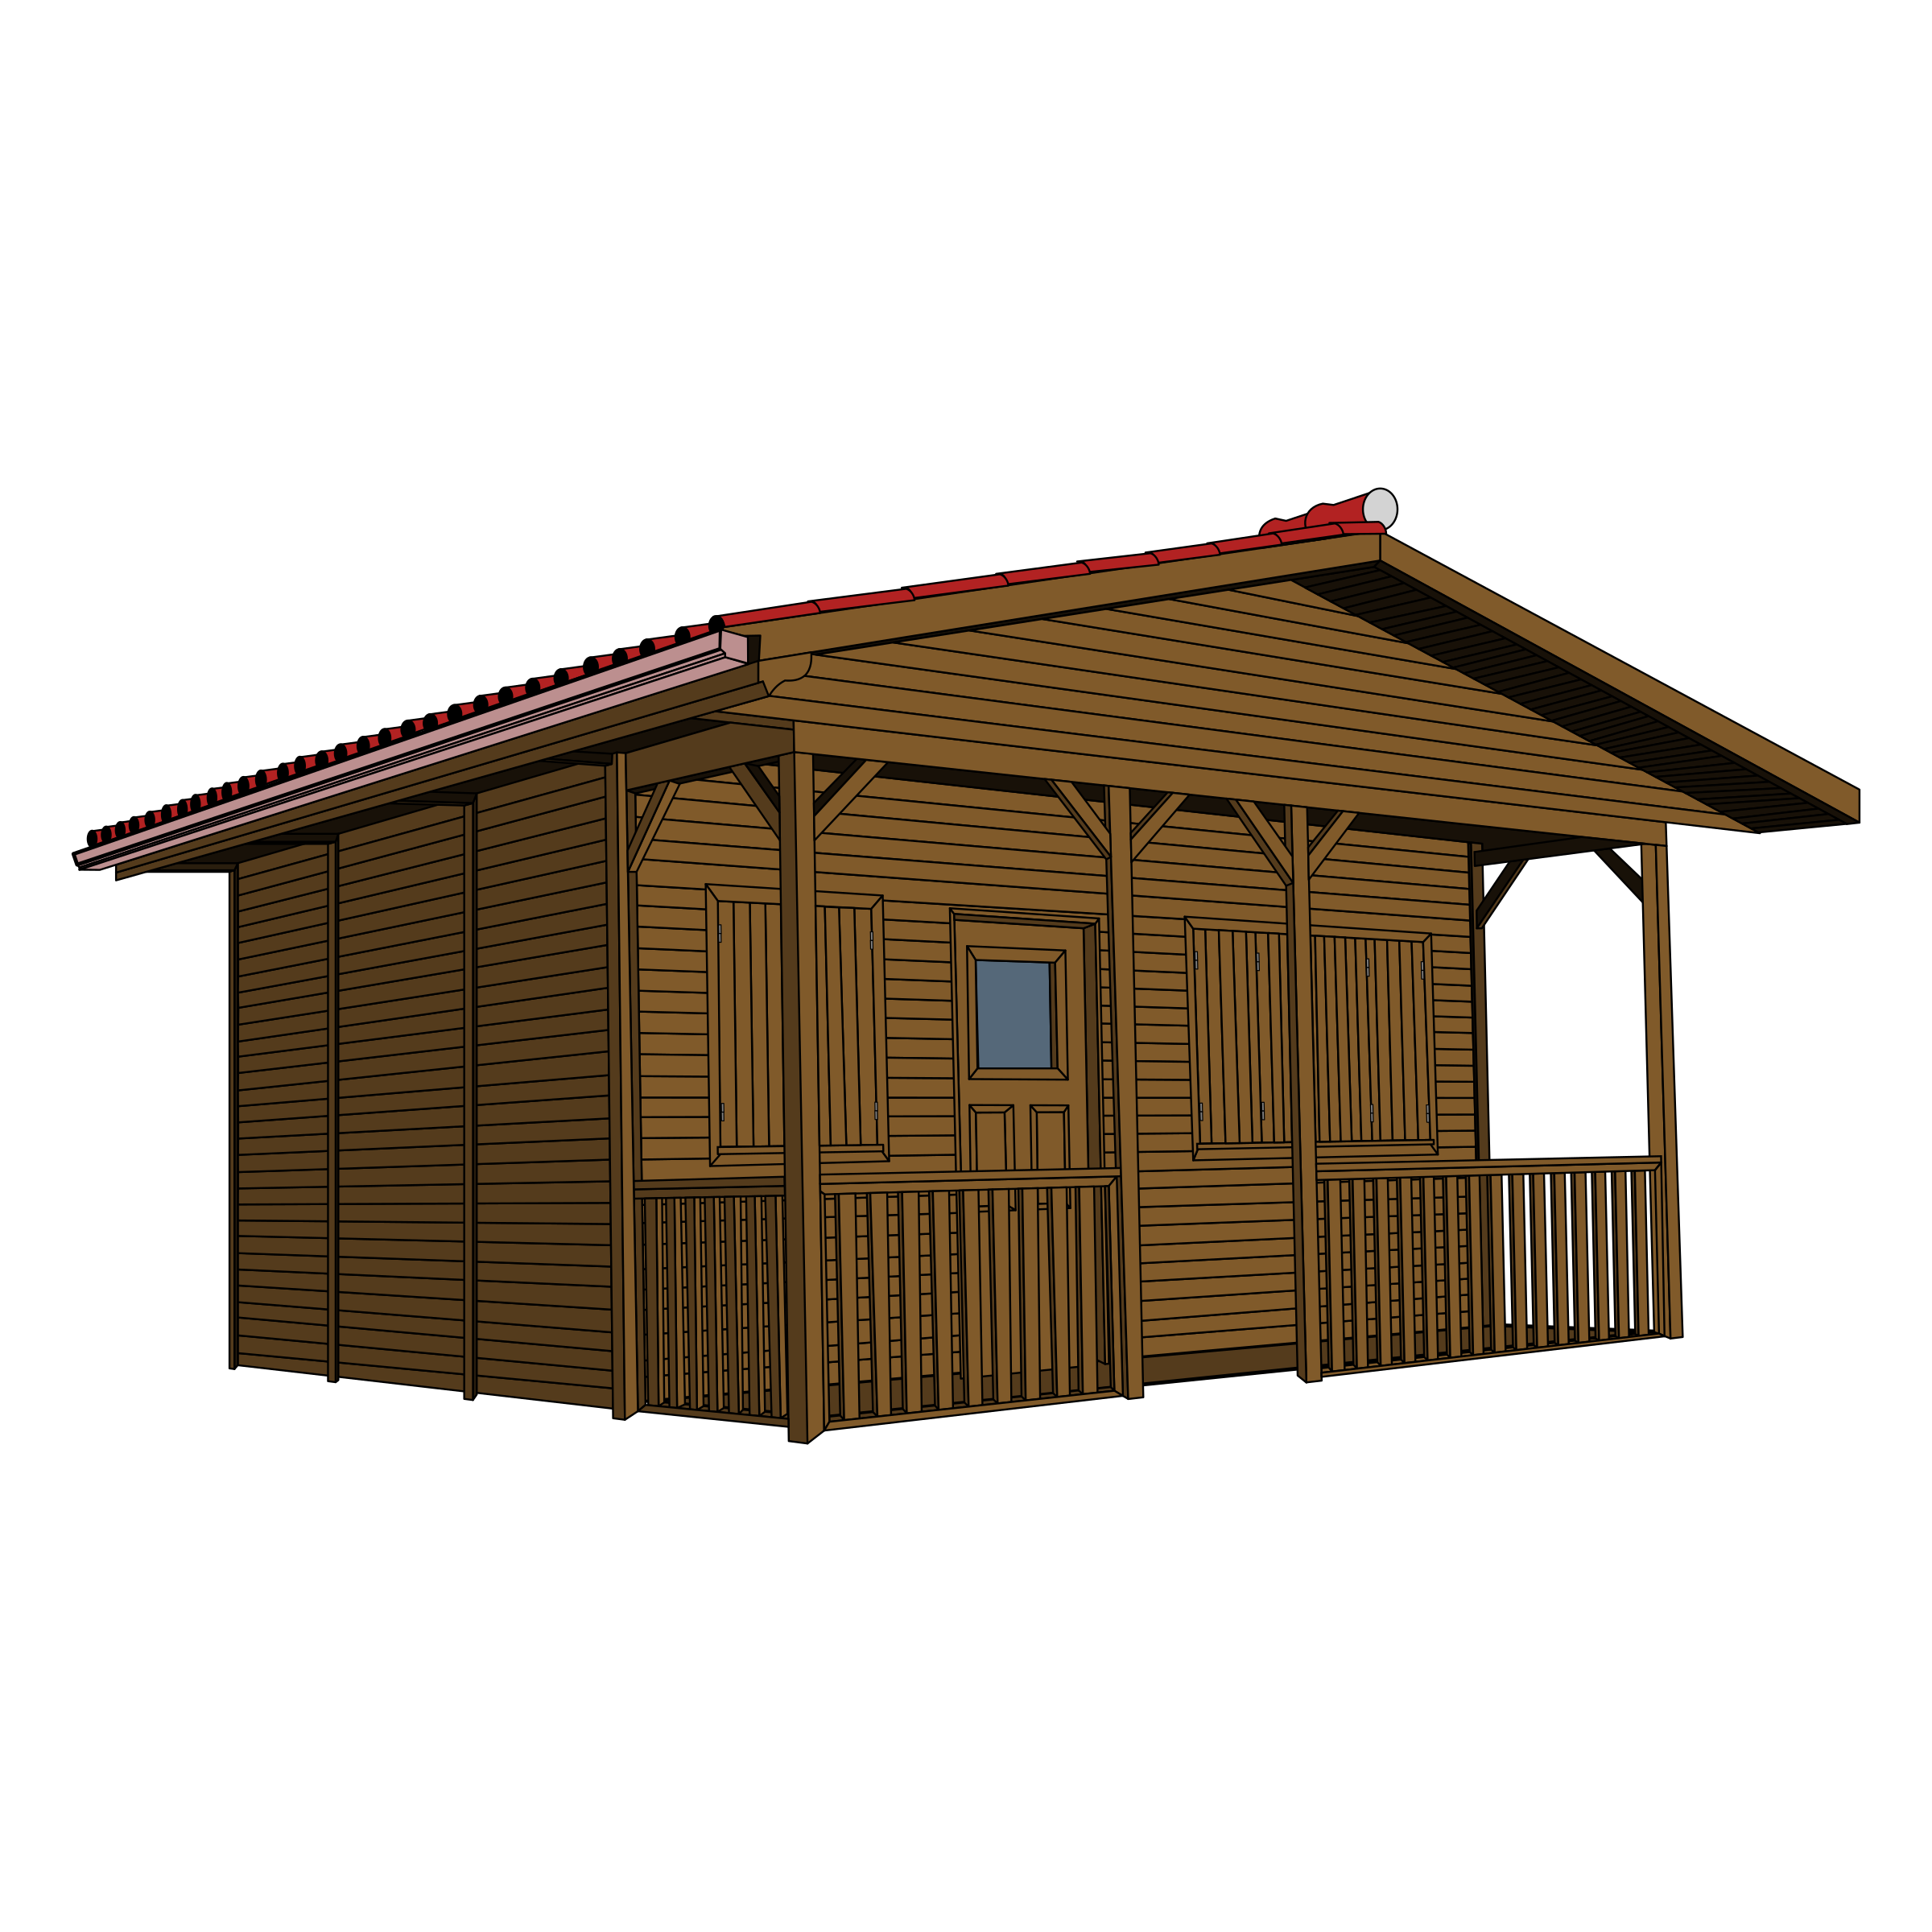 Hut clipart wooden house Clipart House Wooden Wooden House